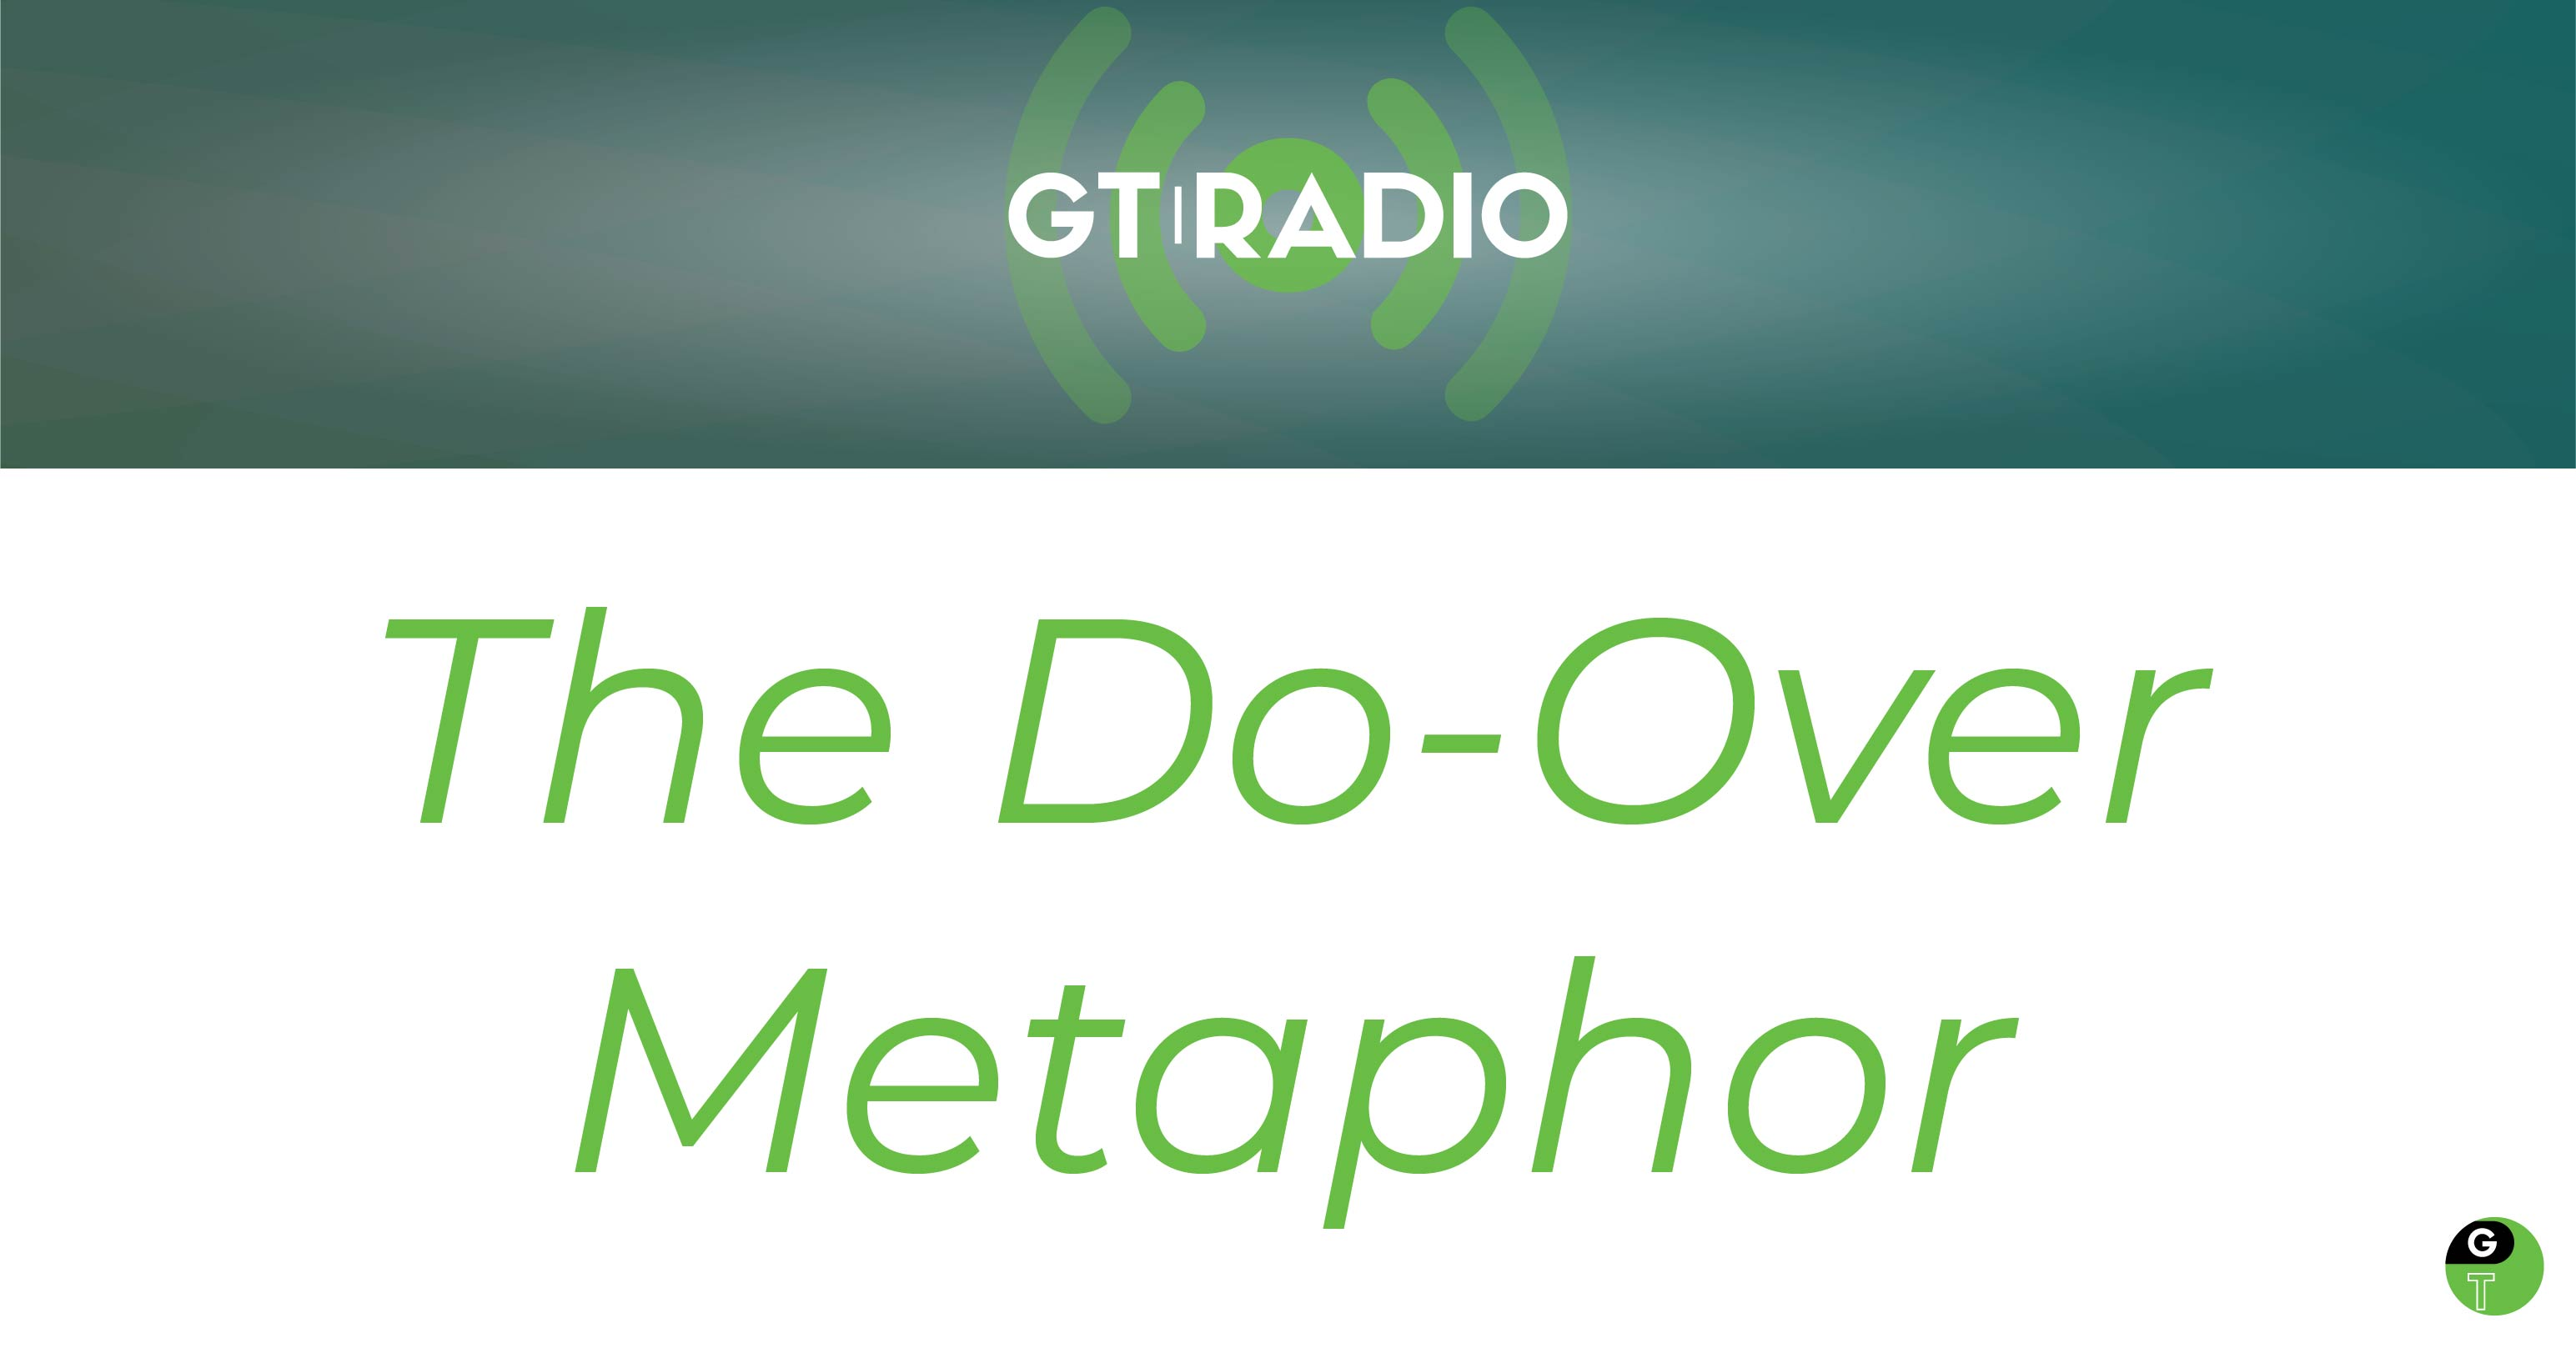 the do-over metaphor